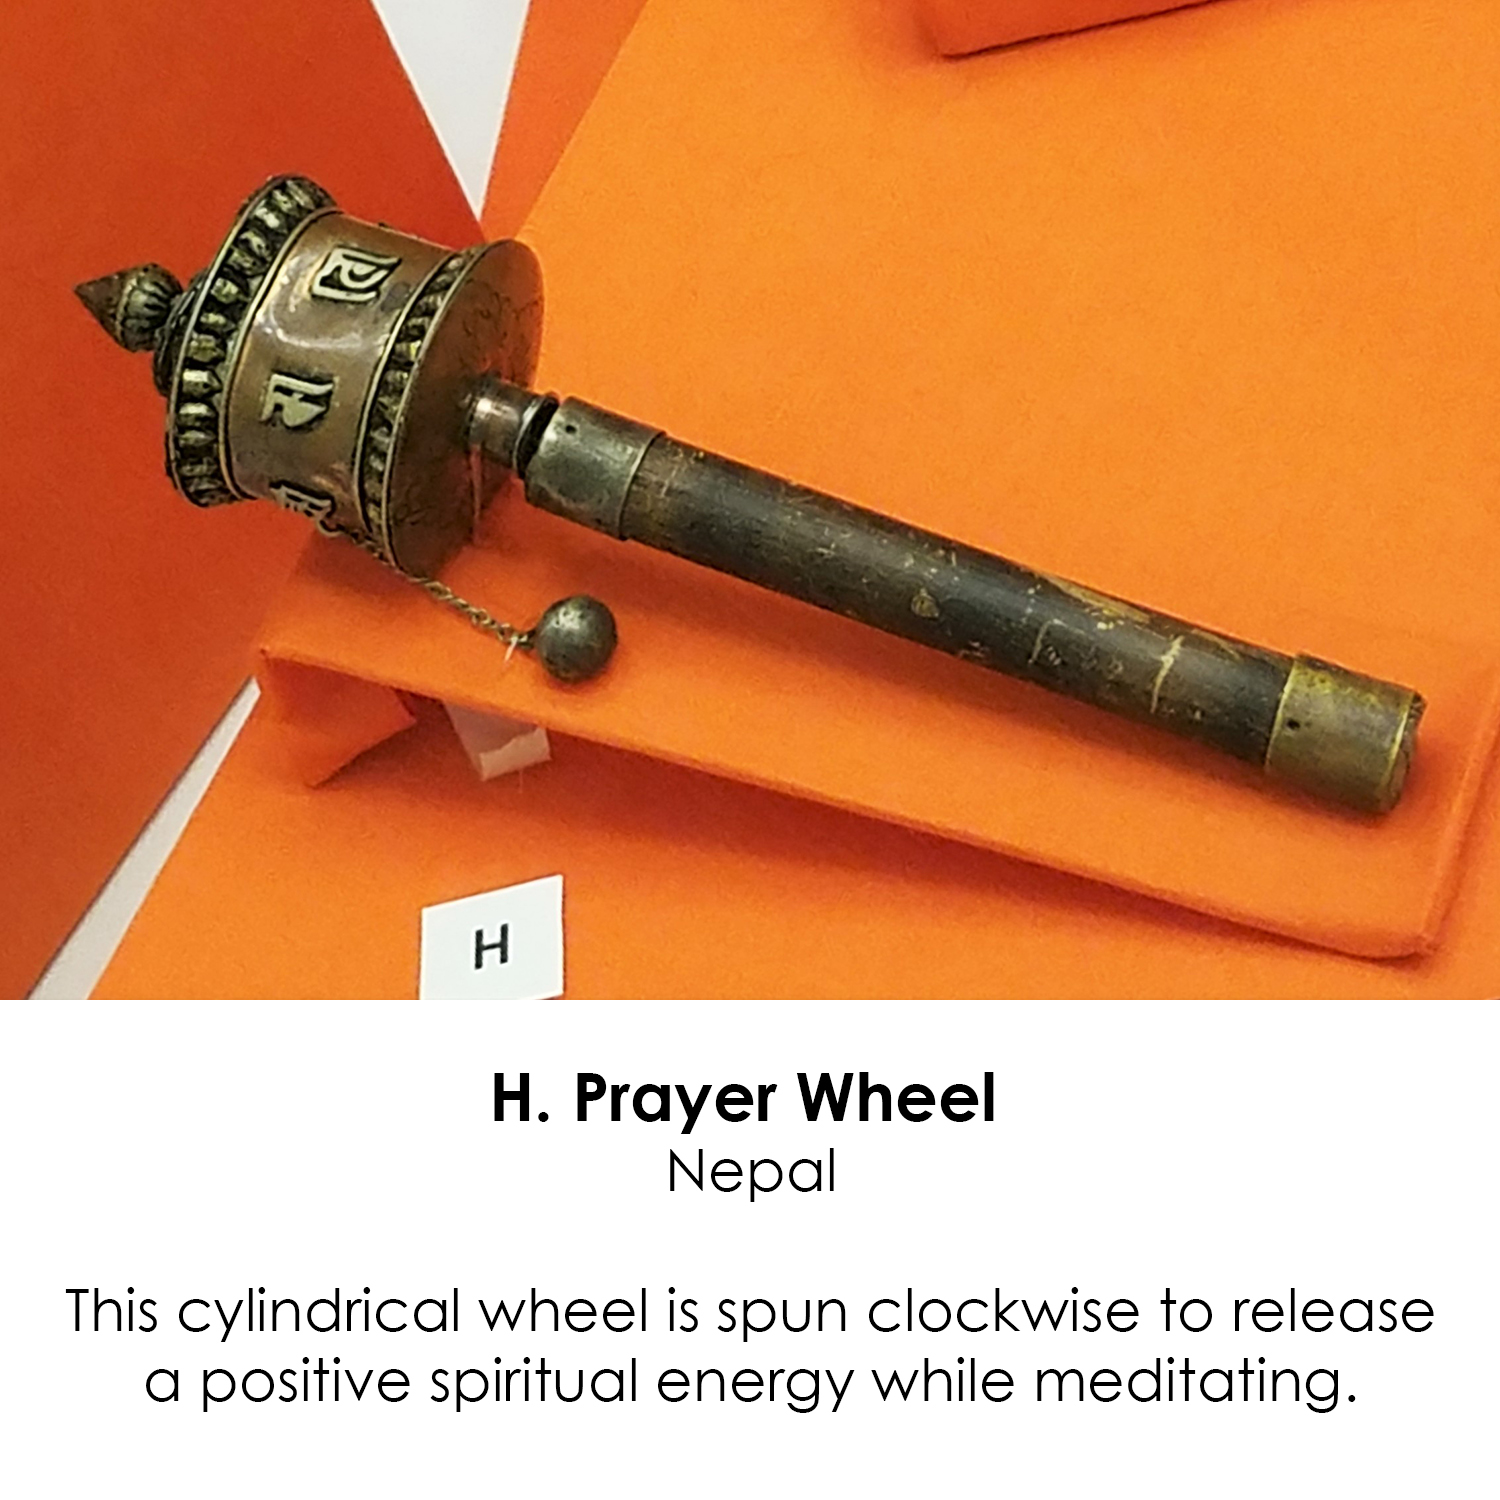 Buddhist Prayer Wheel from Nepal